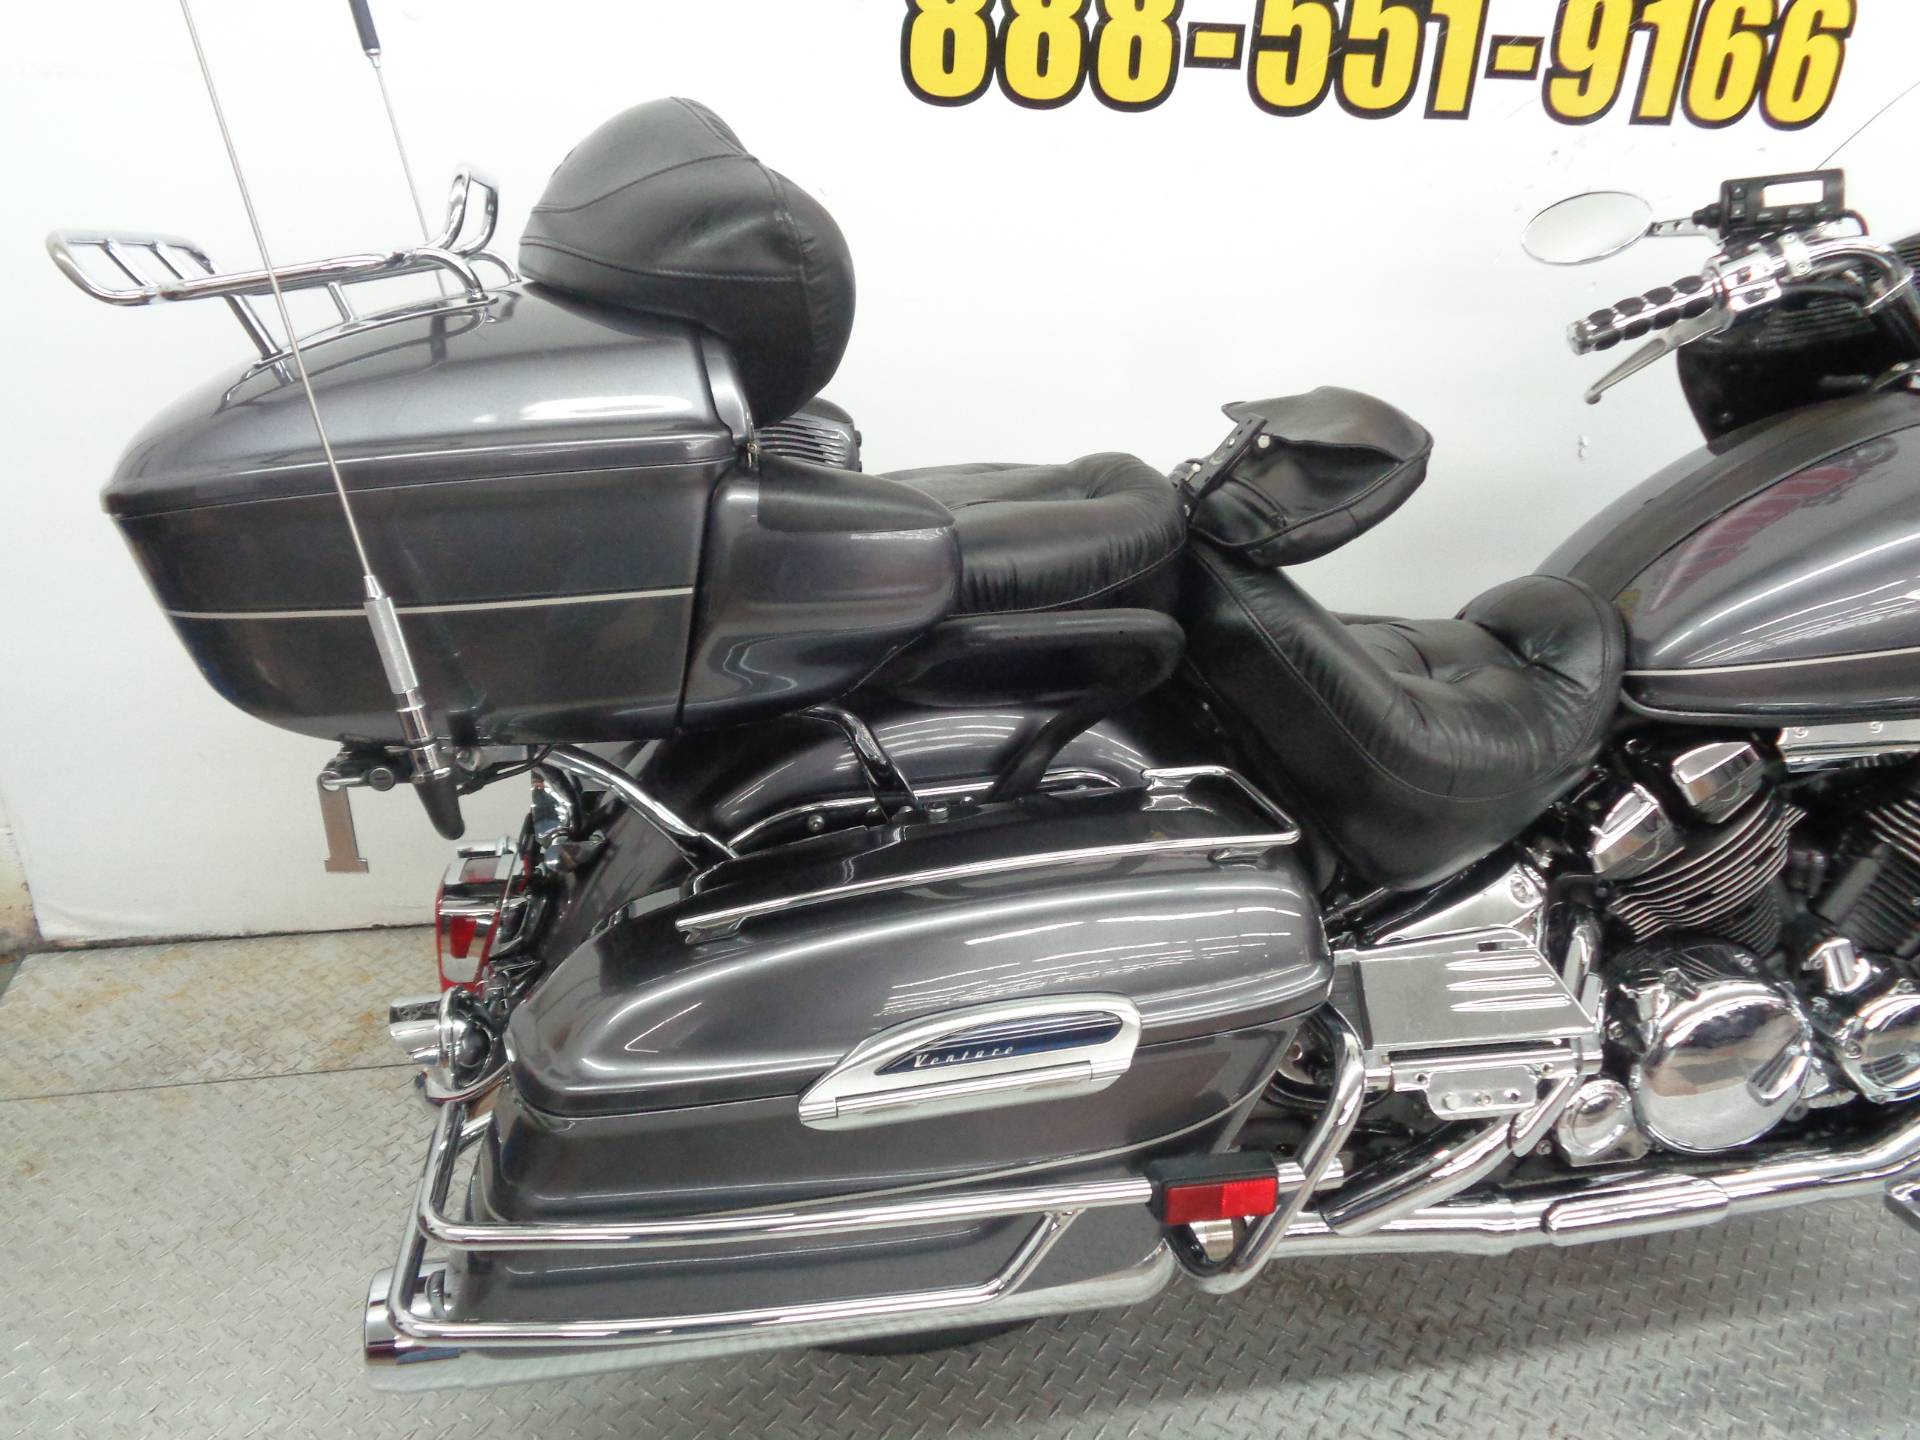 2008 Yamaha Royal Star® Venture in Tulsa, Oklahoma - Photo 7